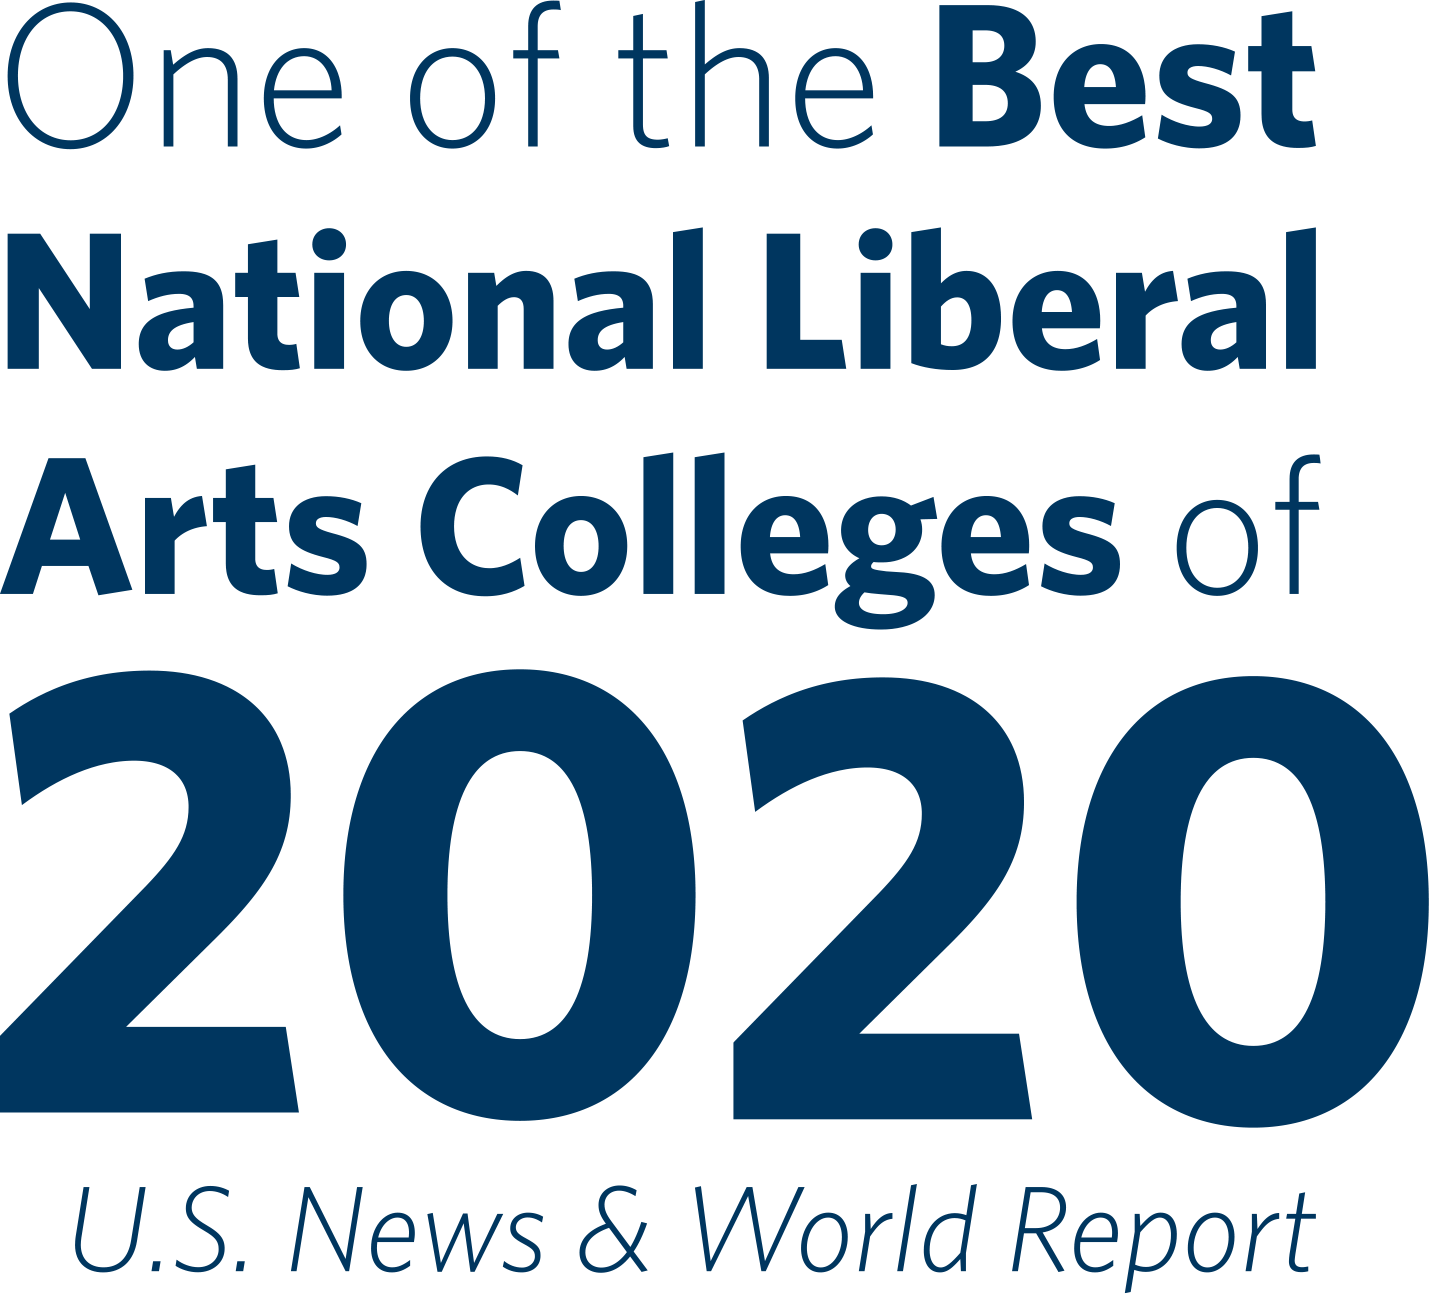 One of the best National Liberal Arts Colleges of 2020, US News and world report.